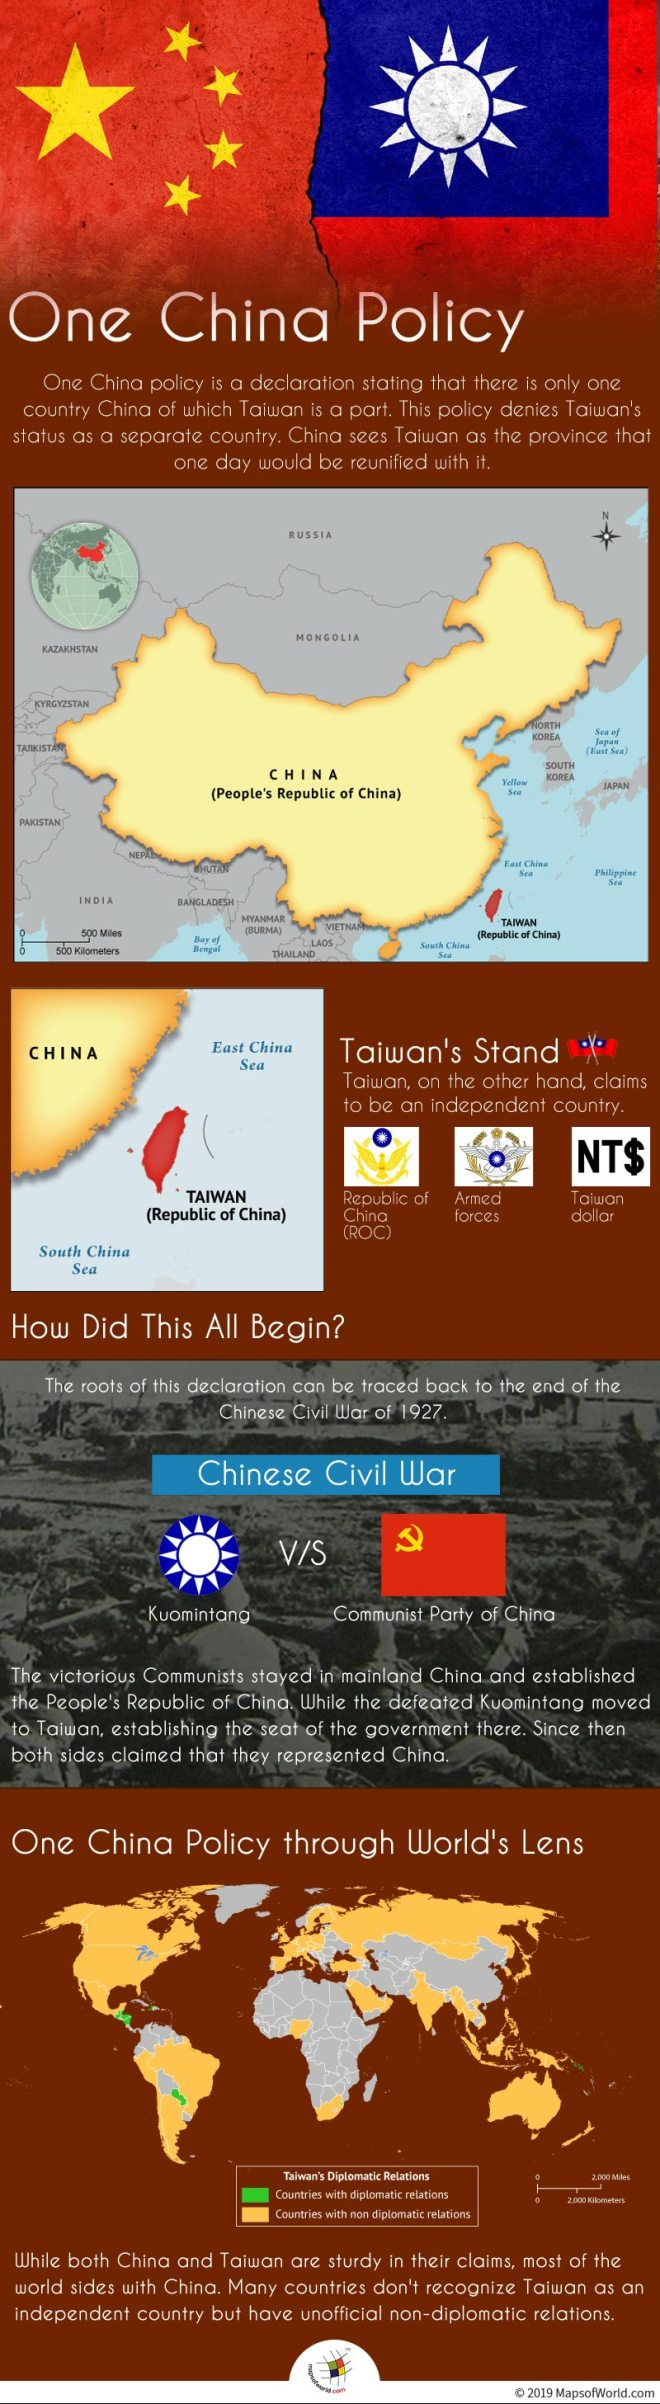 Infographic Showing Details of One China Policy